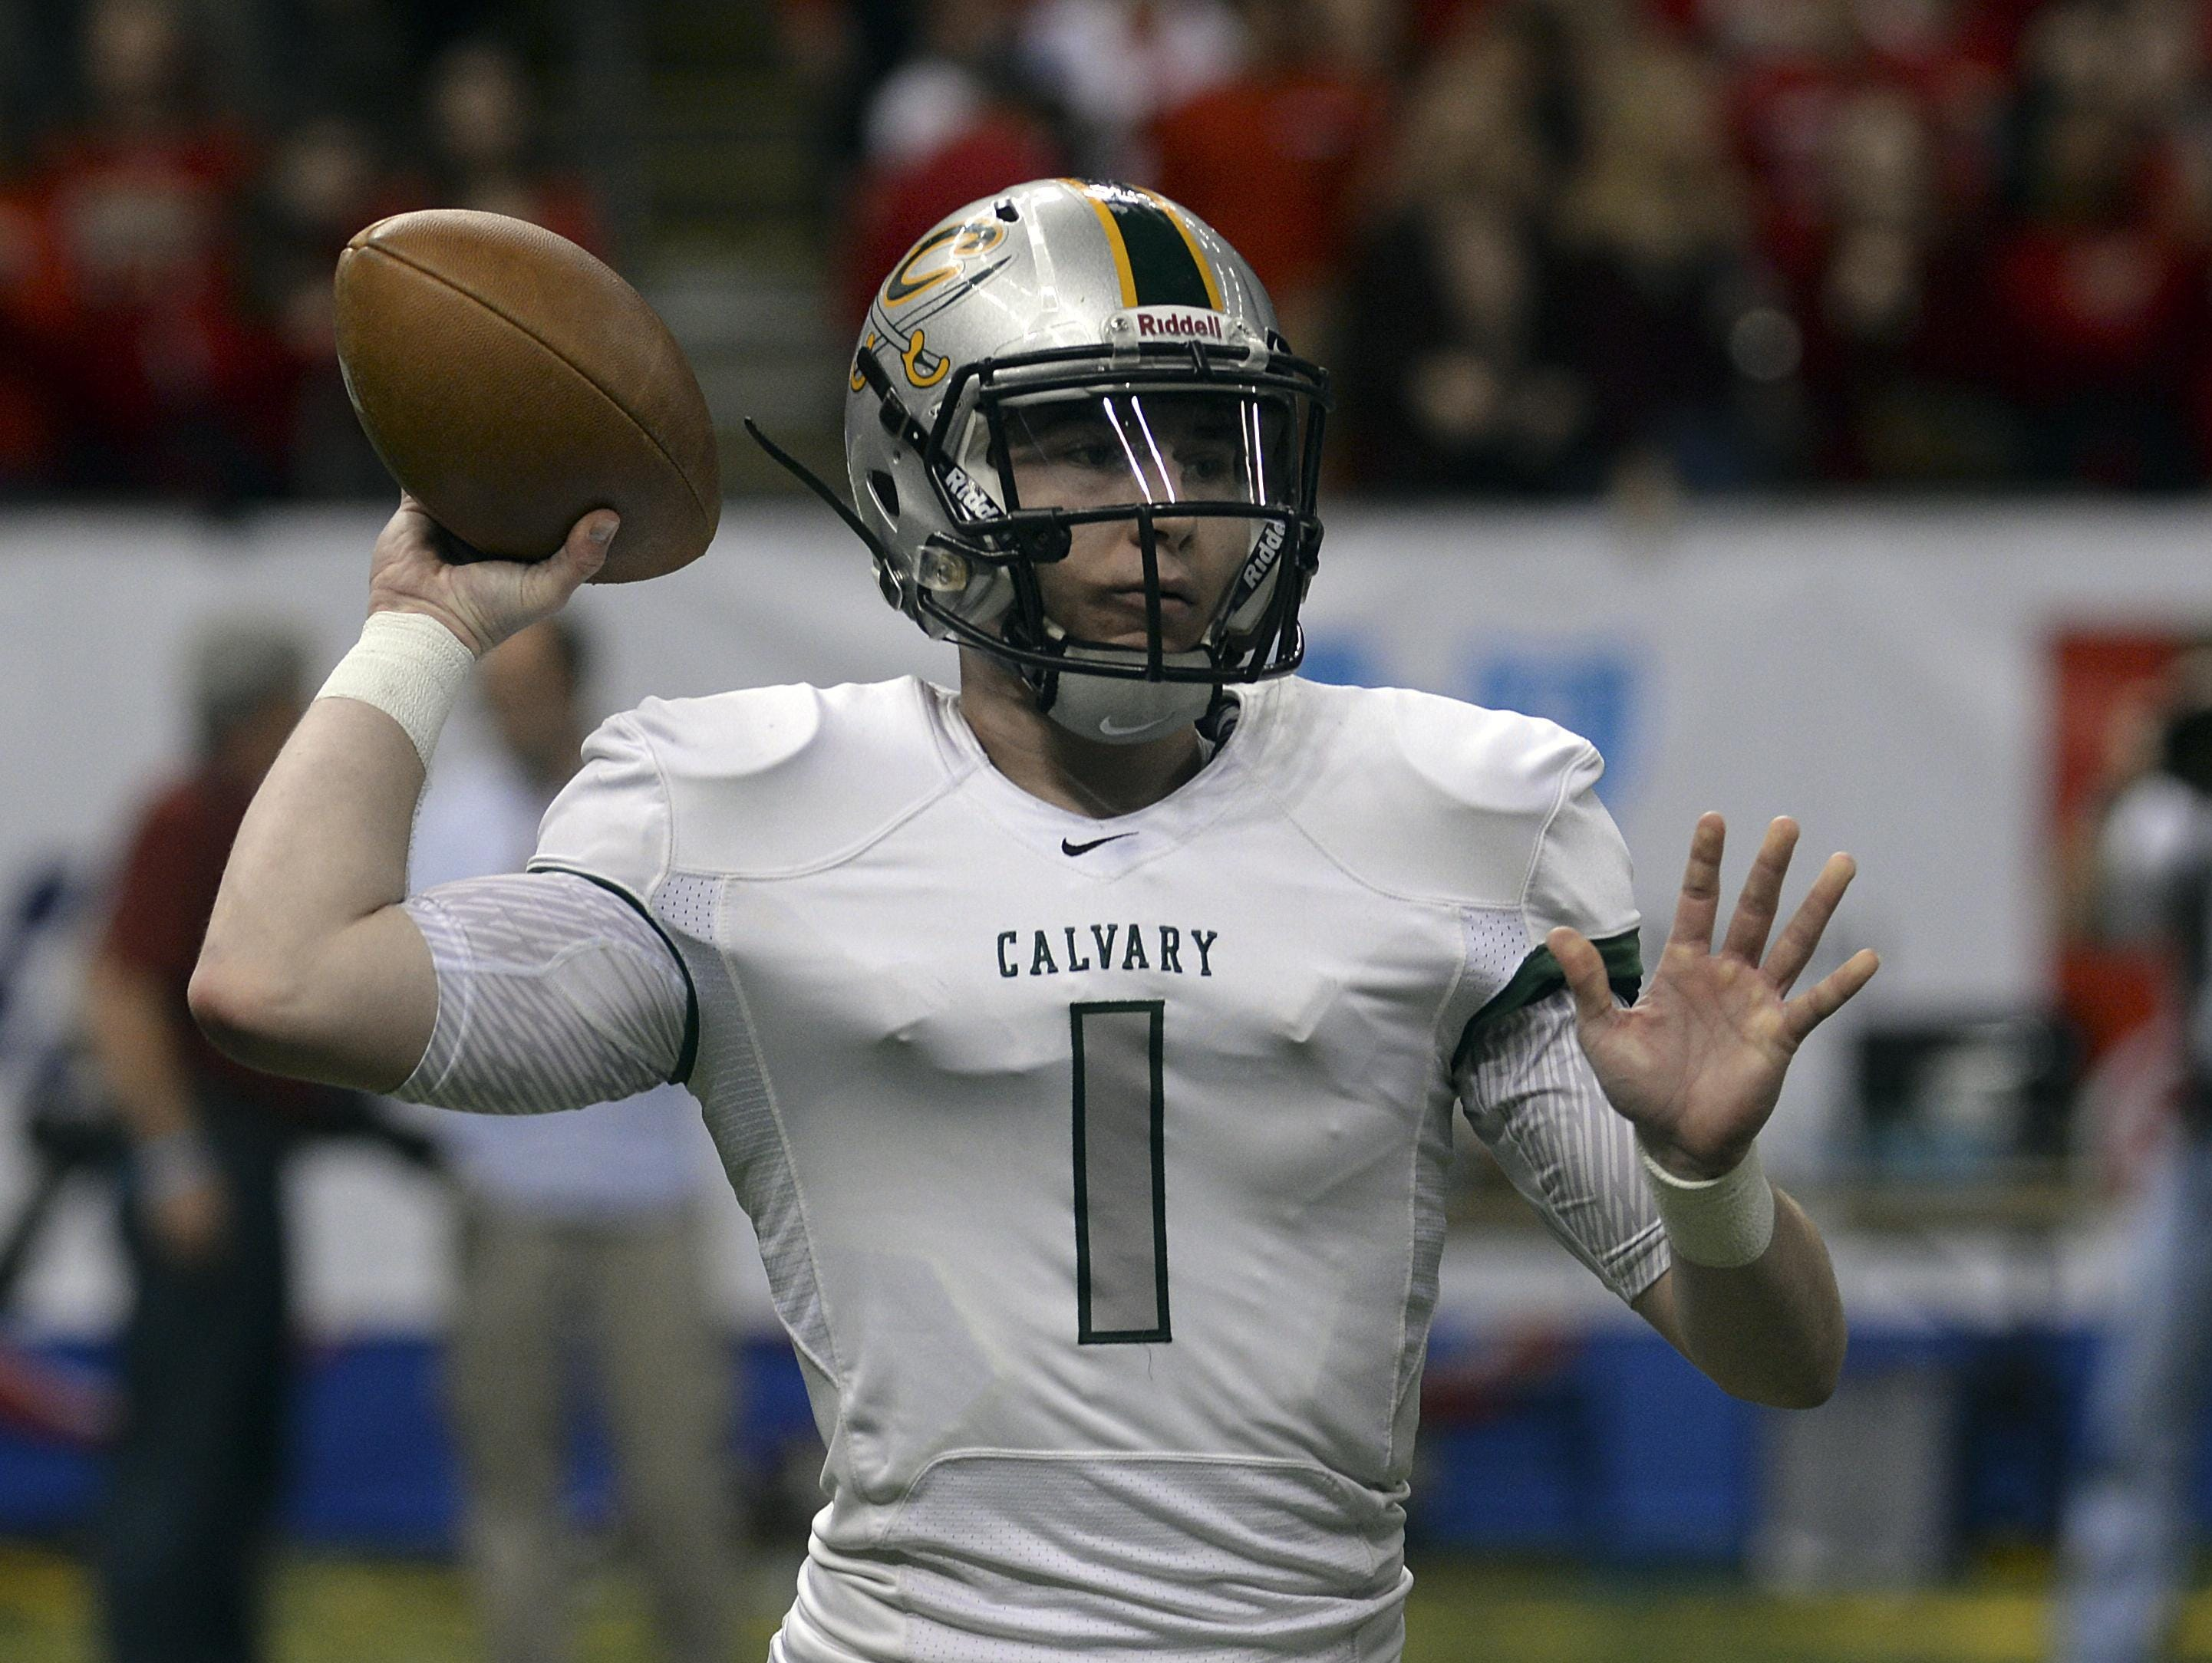 Quarterback Shea Patterson, an Ole Miss commit, will not play at Calvary Baptist Academy for his senior season.